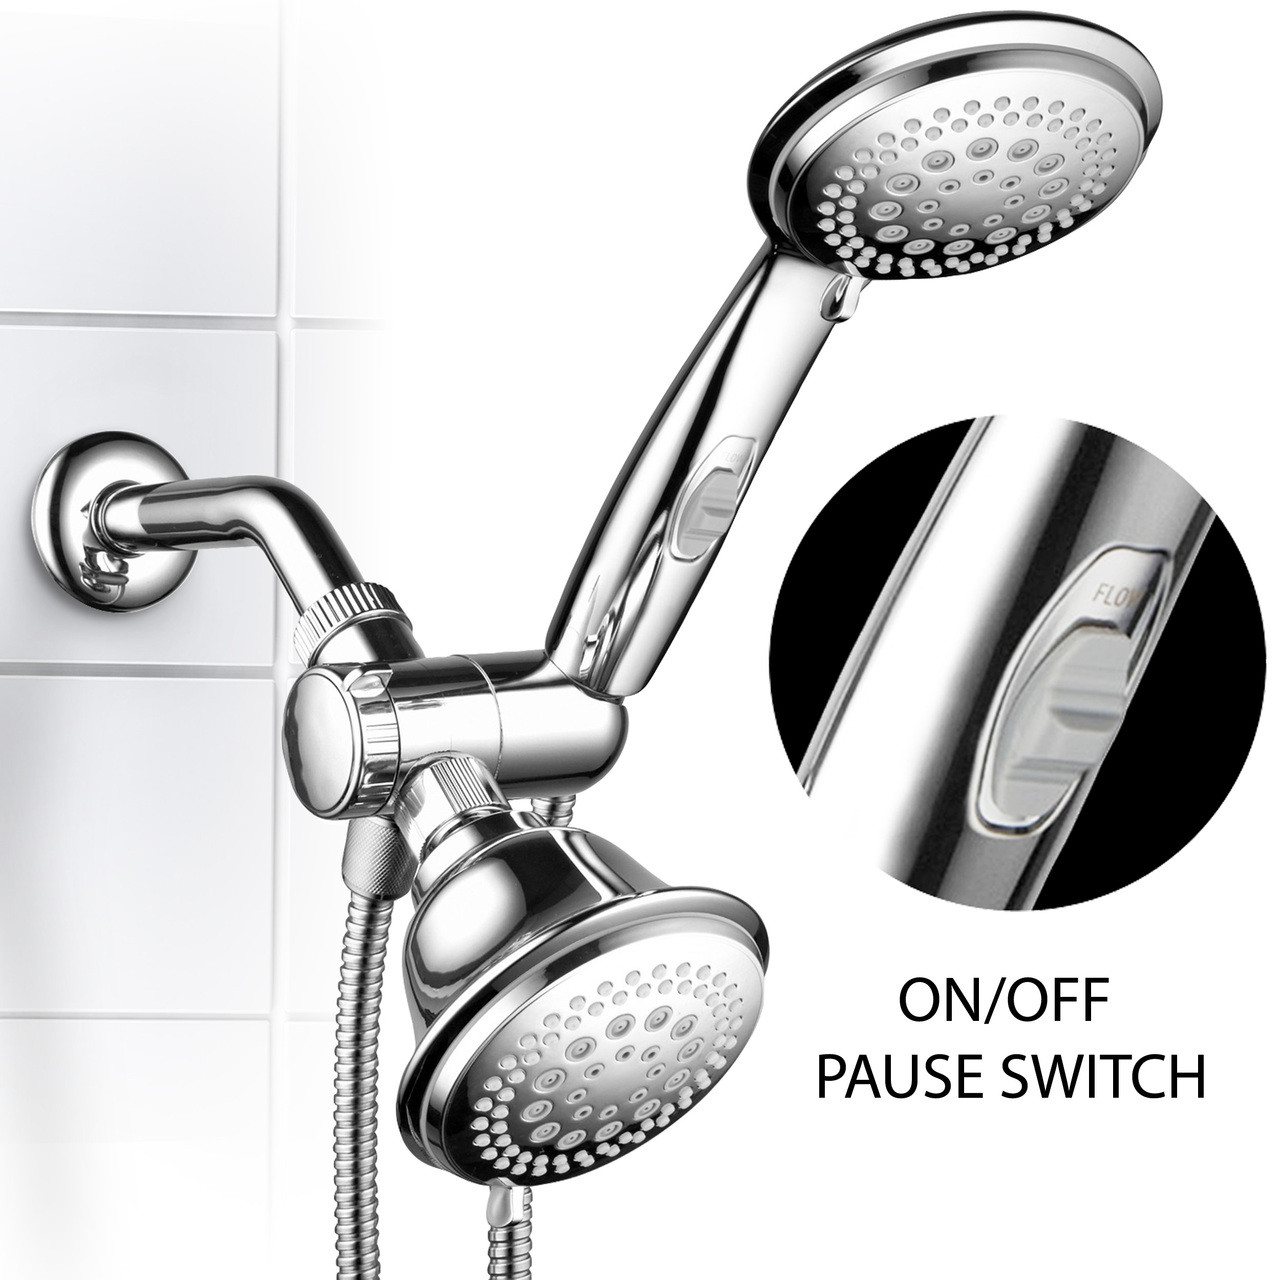 Hotel Spa 1465 Ultra Luxury 42 Setting Head Handheld Shower Combo With Patented On Off Pause Switch And 5 7 Foot Stretchable Stainless Steel